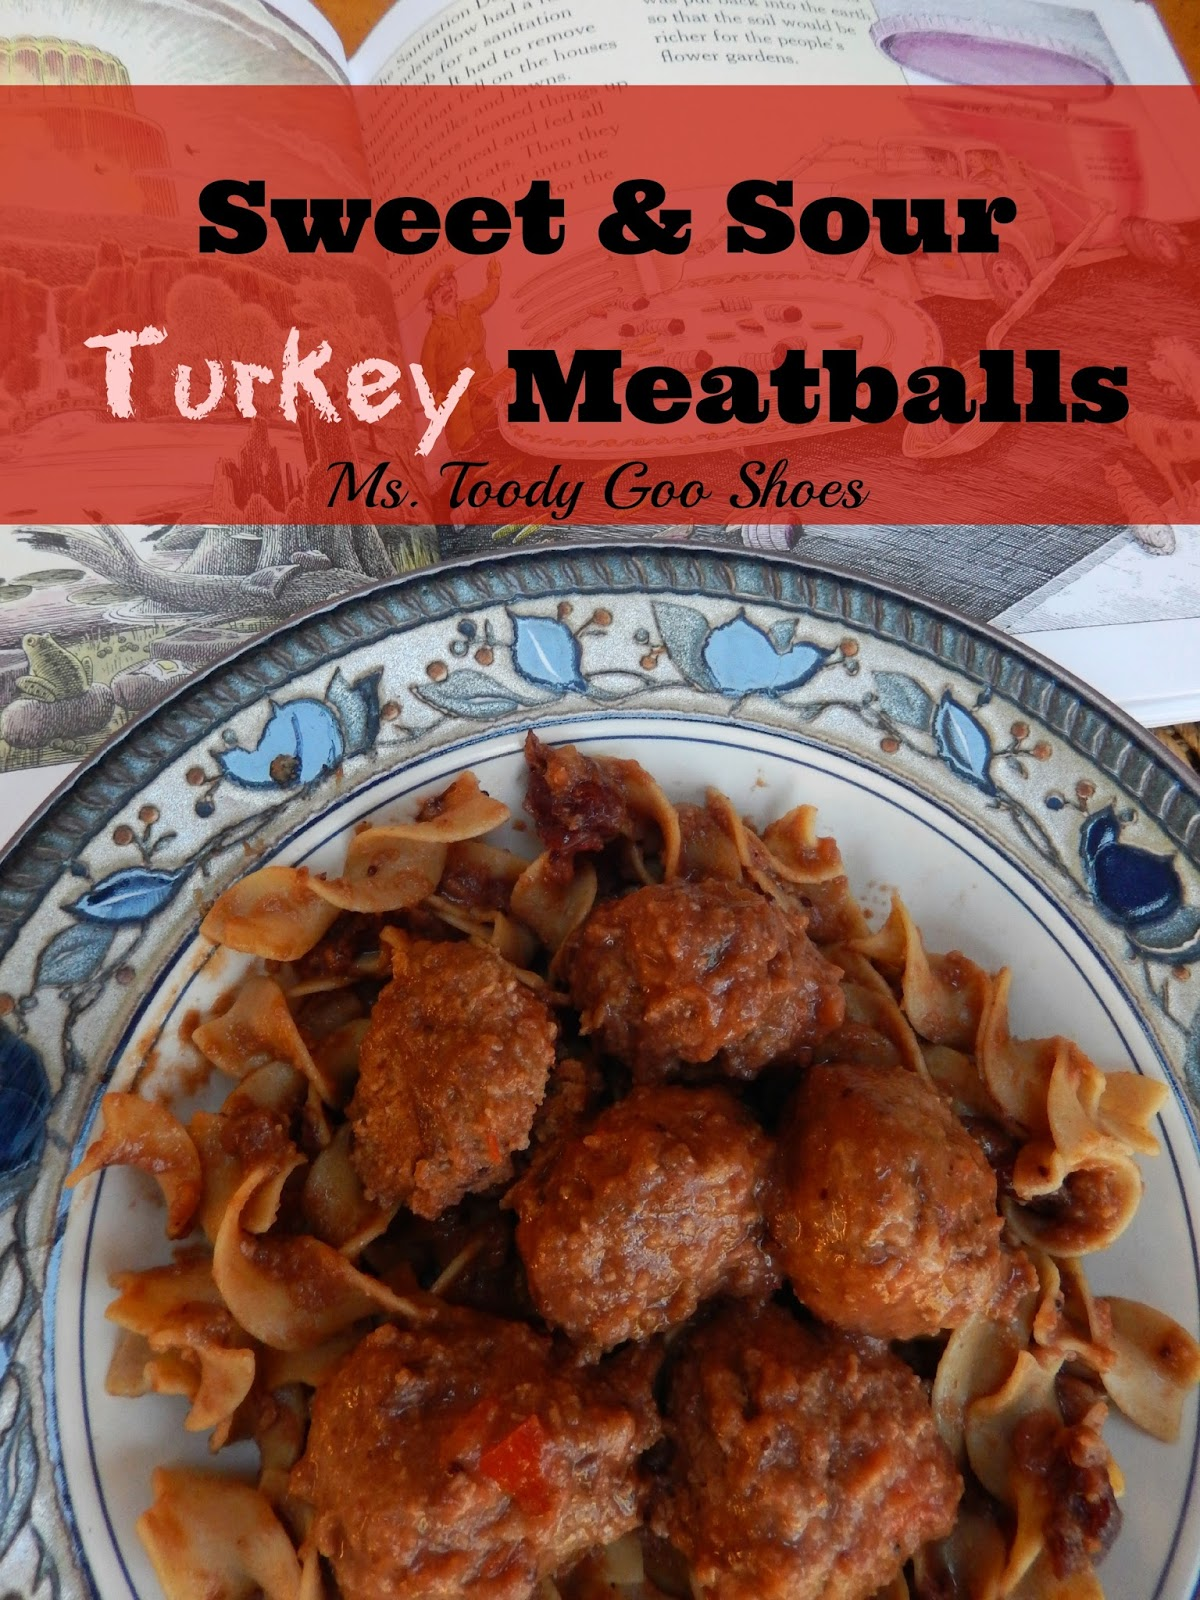 Sweet & Sour Meatballs by Ms. Toody Goo Shoes